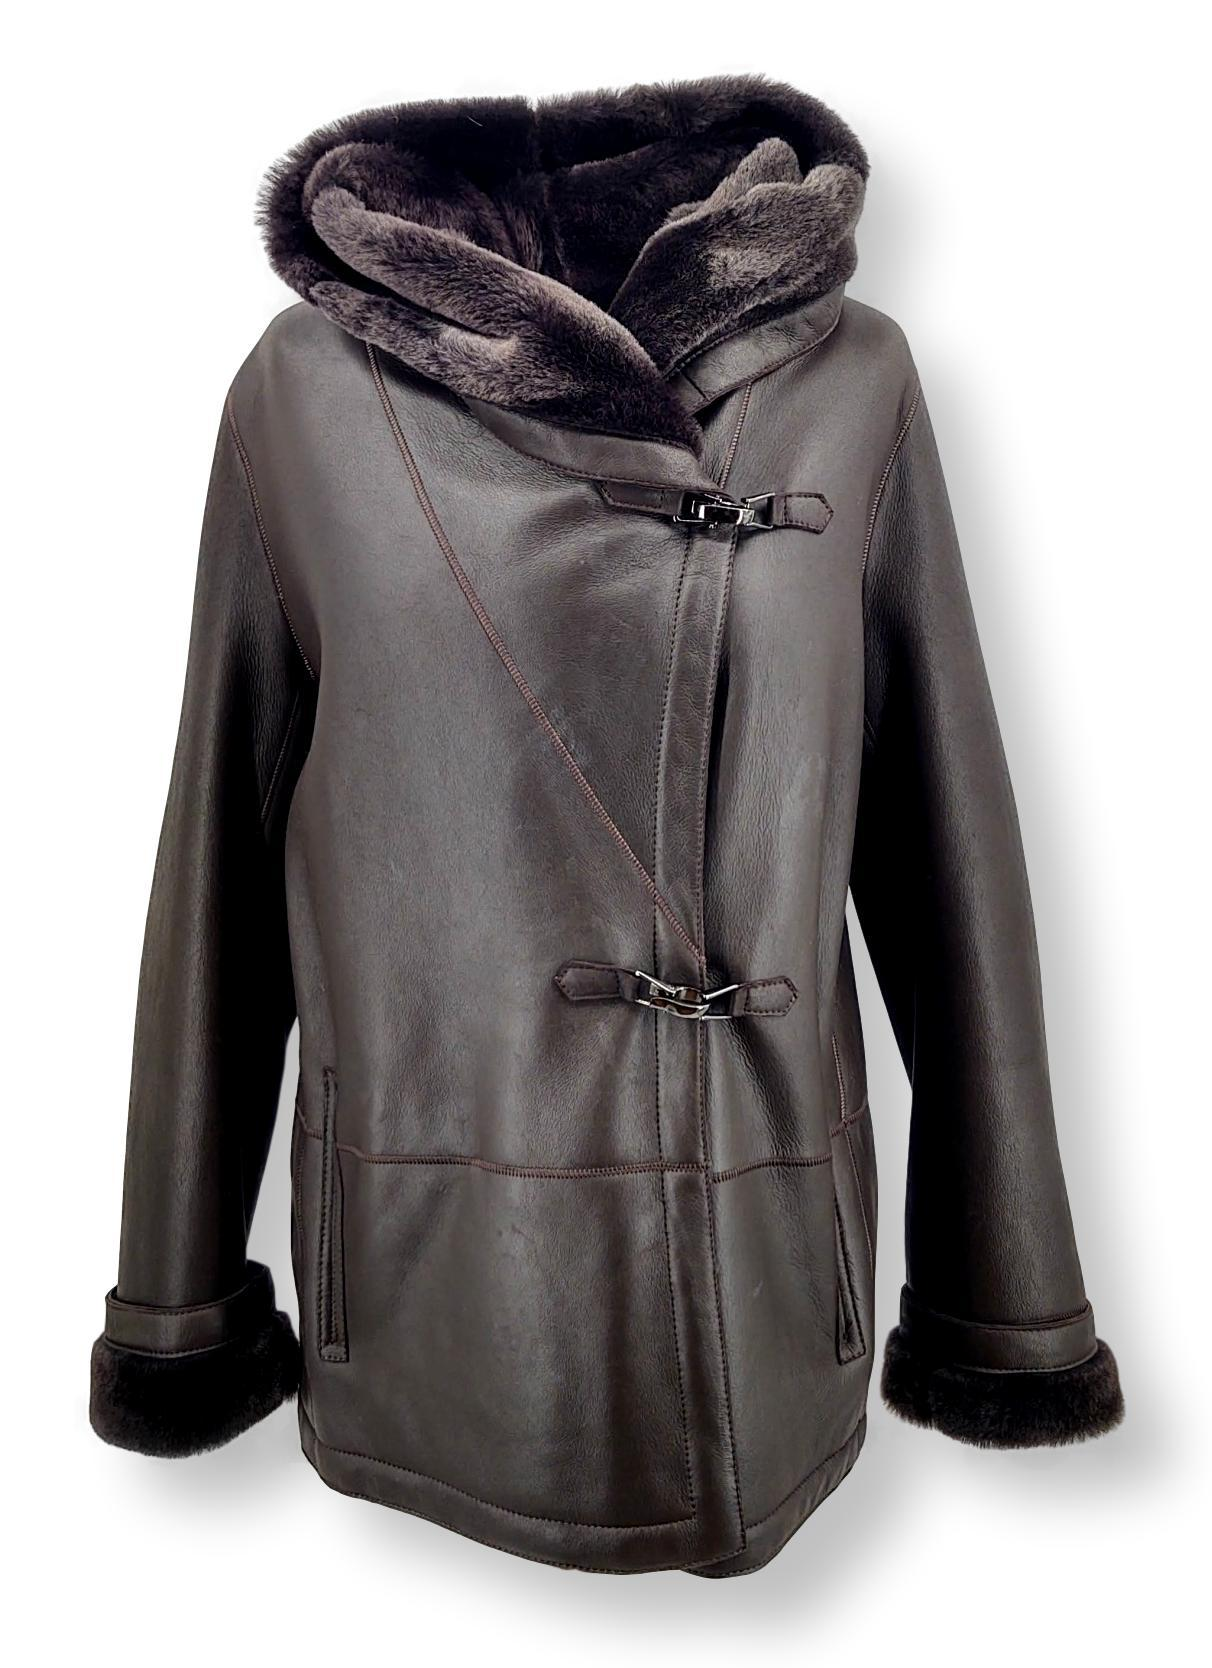 969, 70 cm. - Hood - Nappa Lamb Crack - Women - Brown | STAMPE PELS